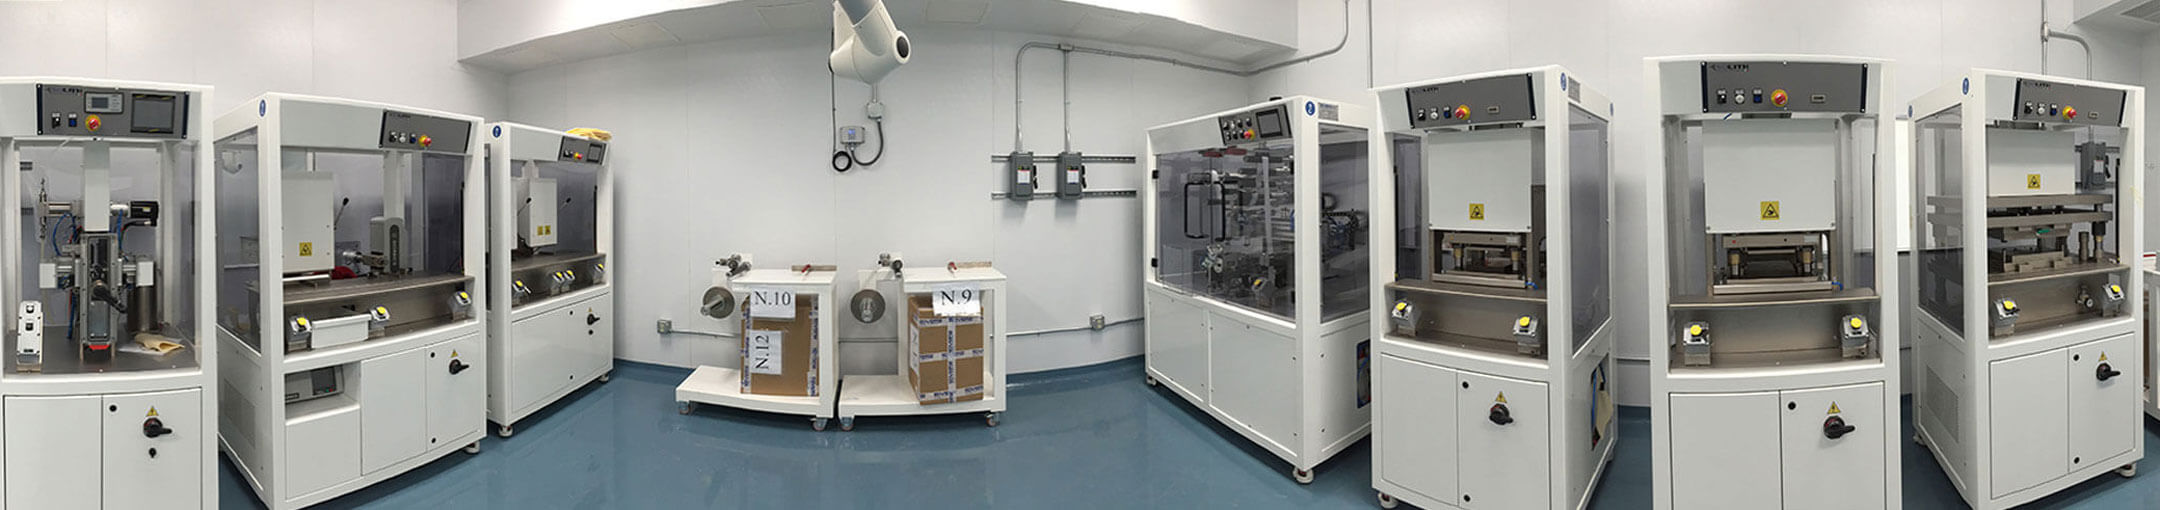 View of the interior of a lab in the Battery Prototyping Center